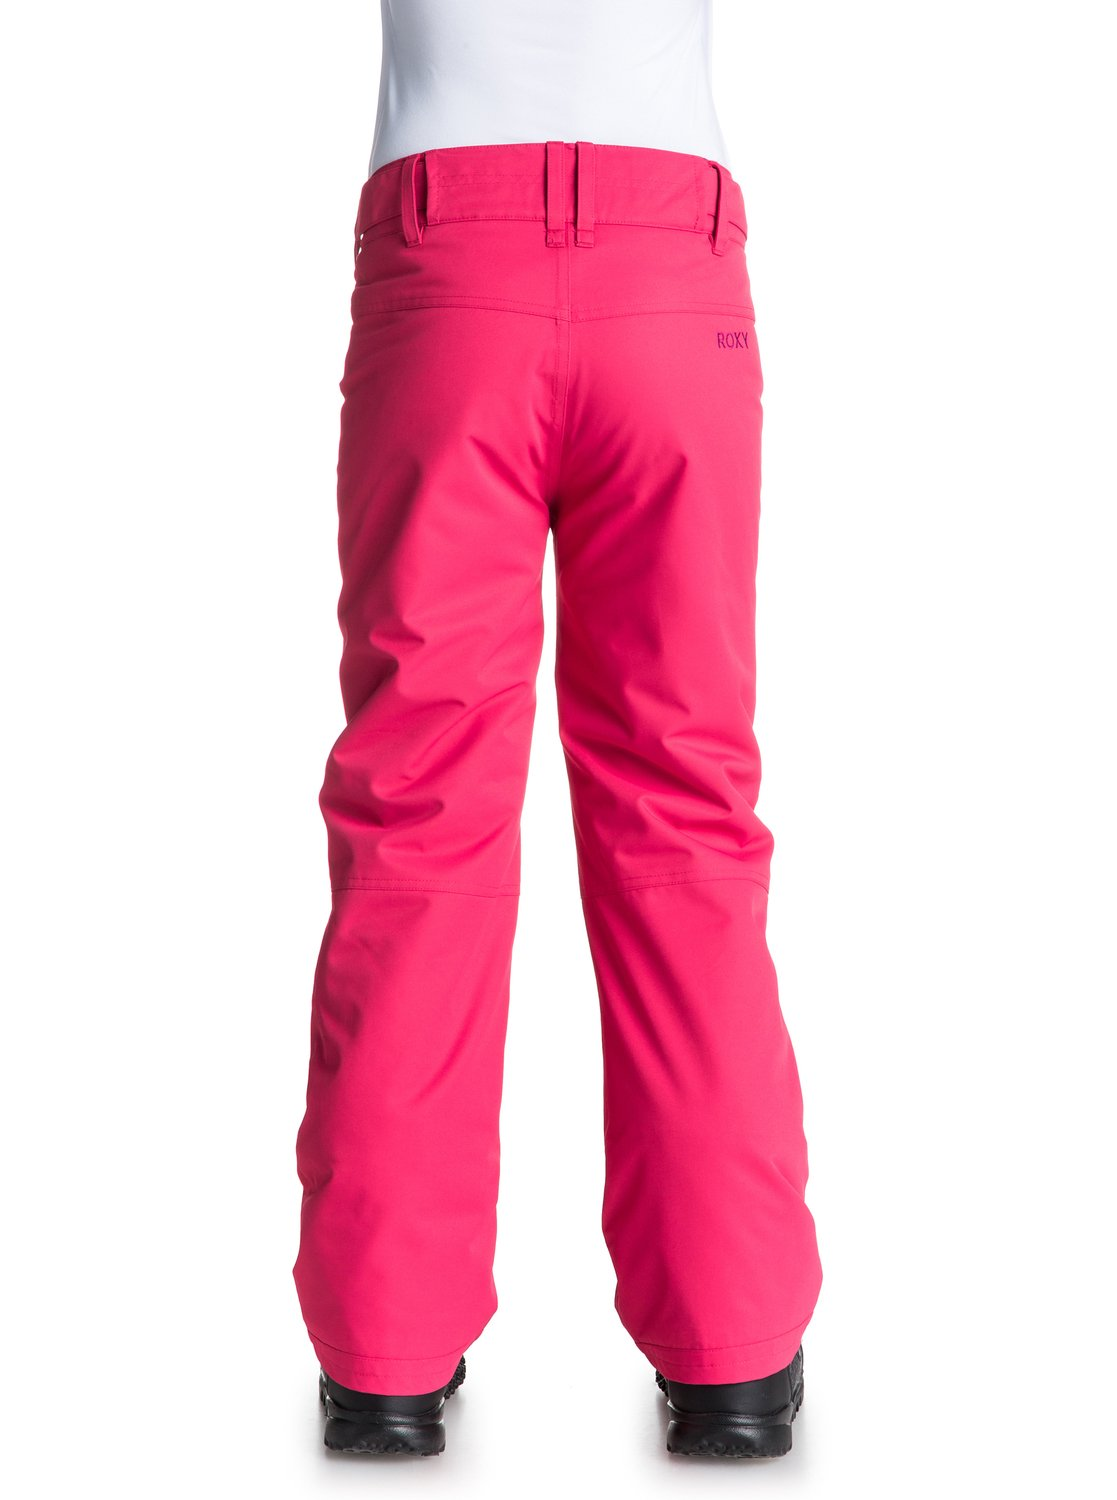 Find great deals on eBay for girls snow pants. Shop with confidence.